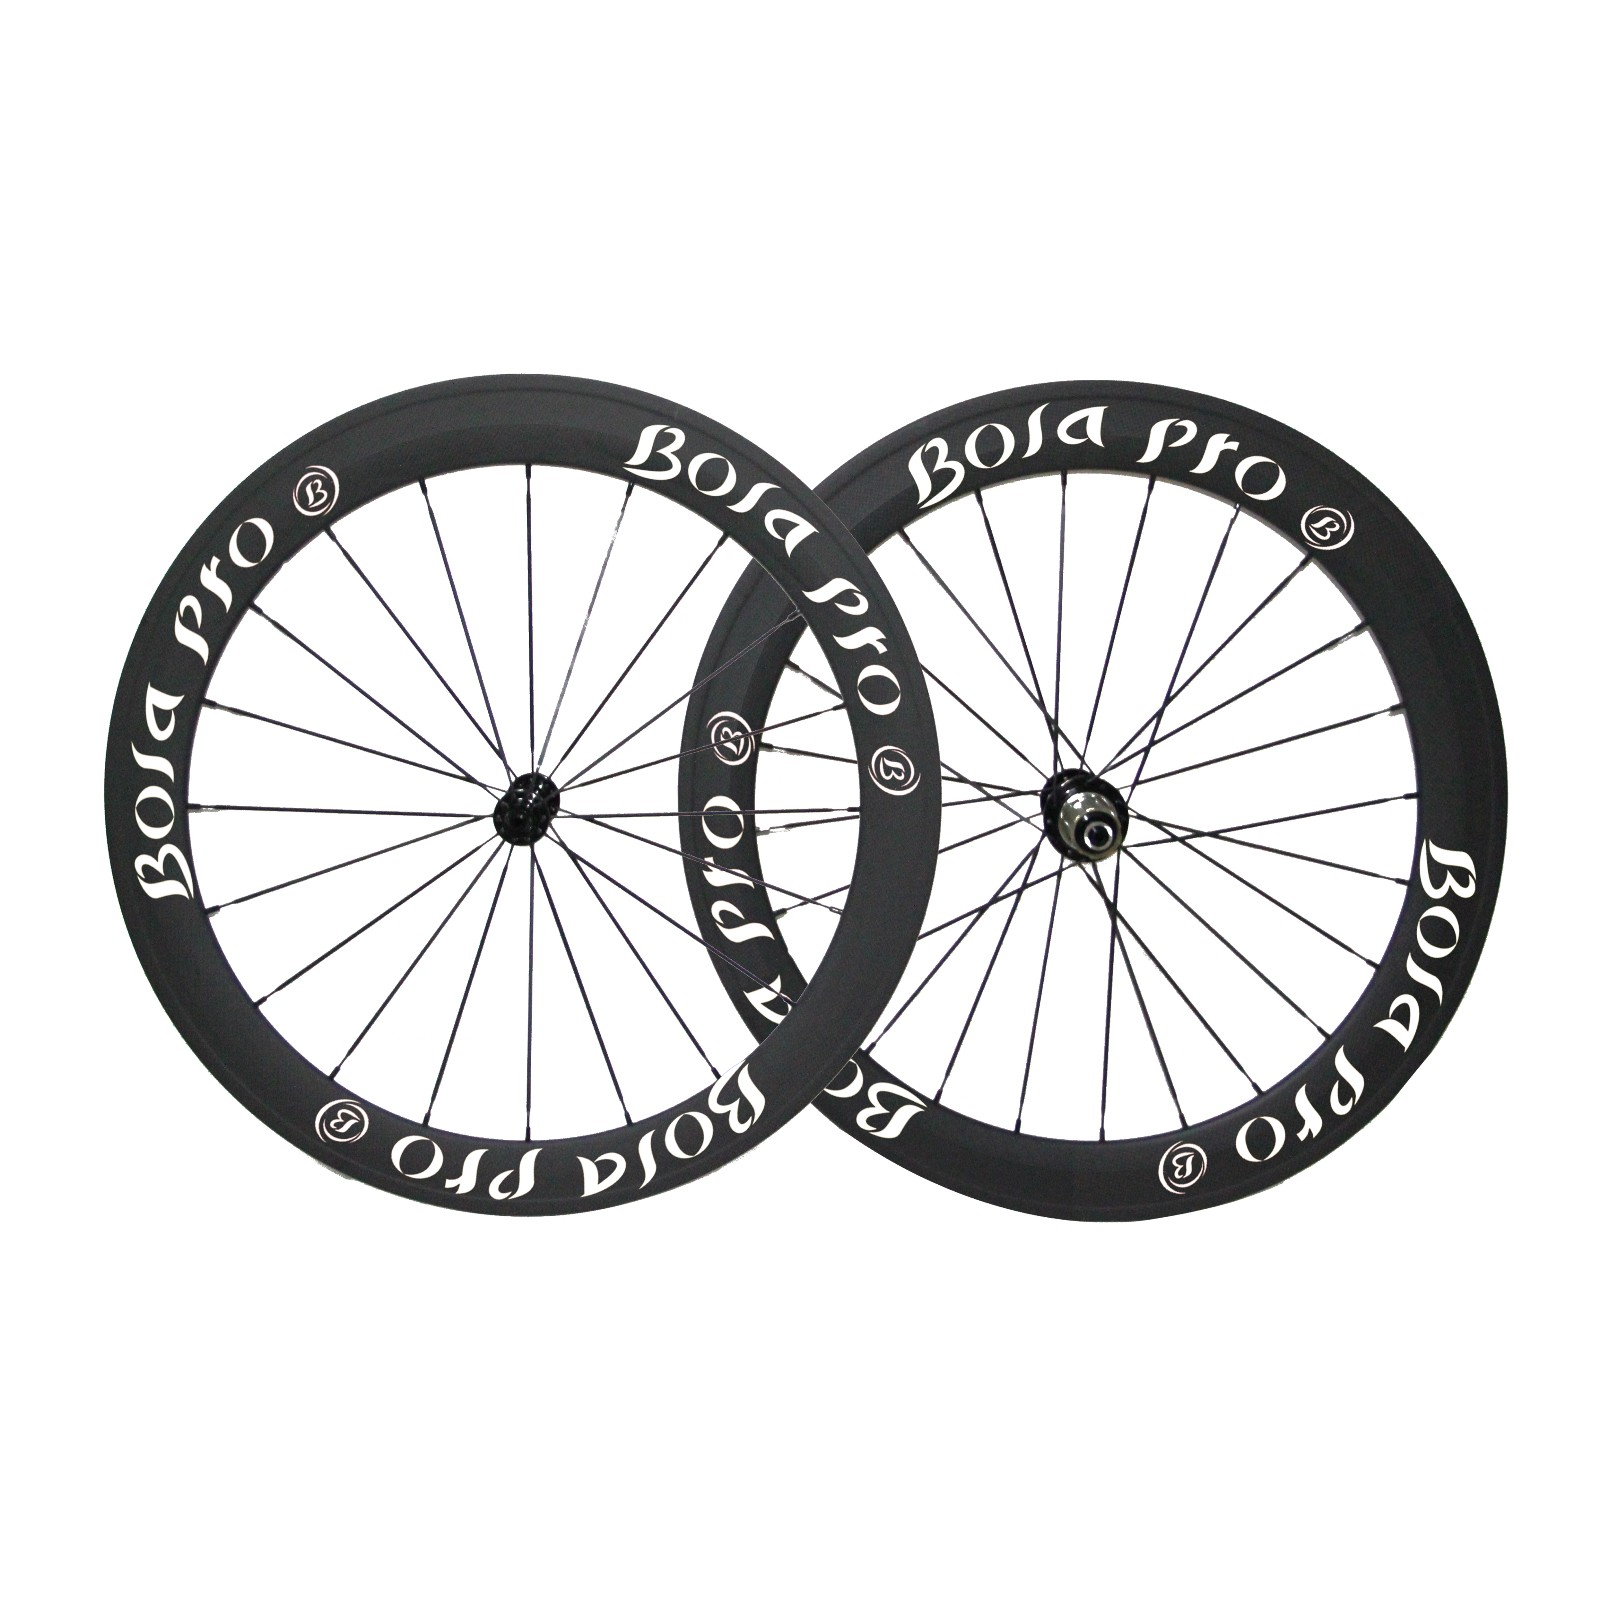 700C 45mm carbon track wheelset with center lock and straight pull hub